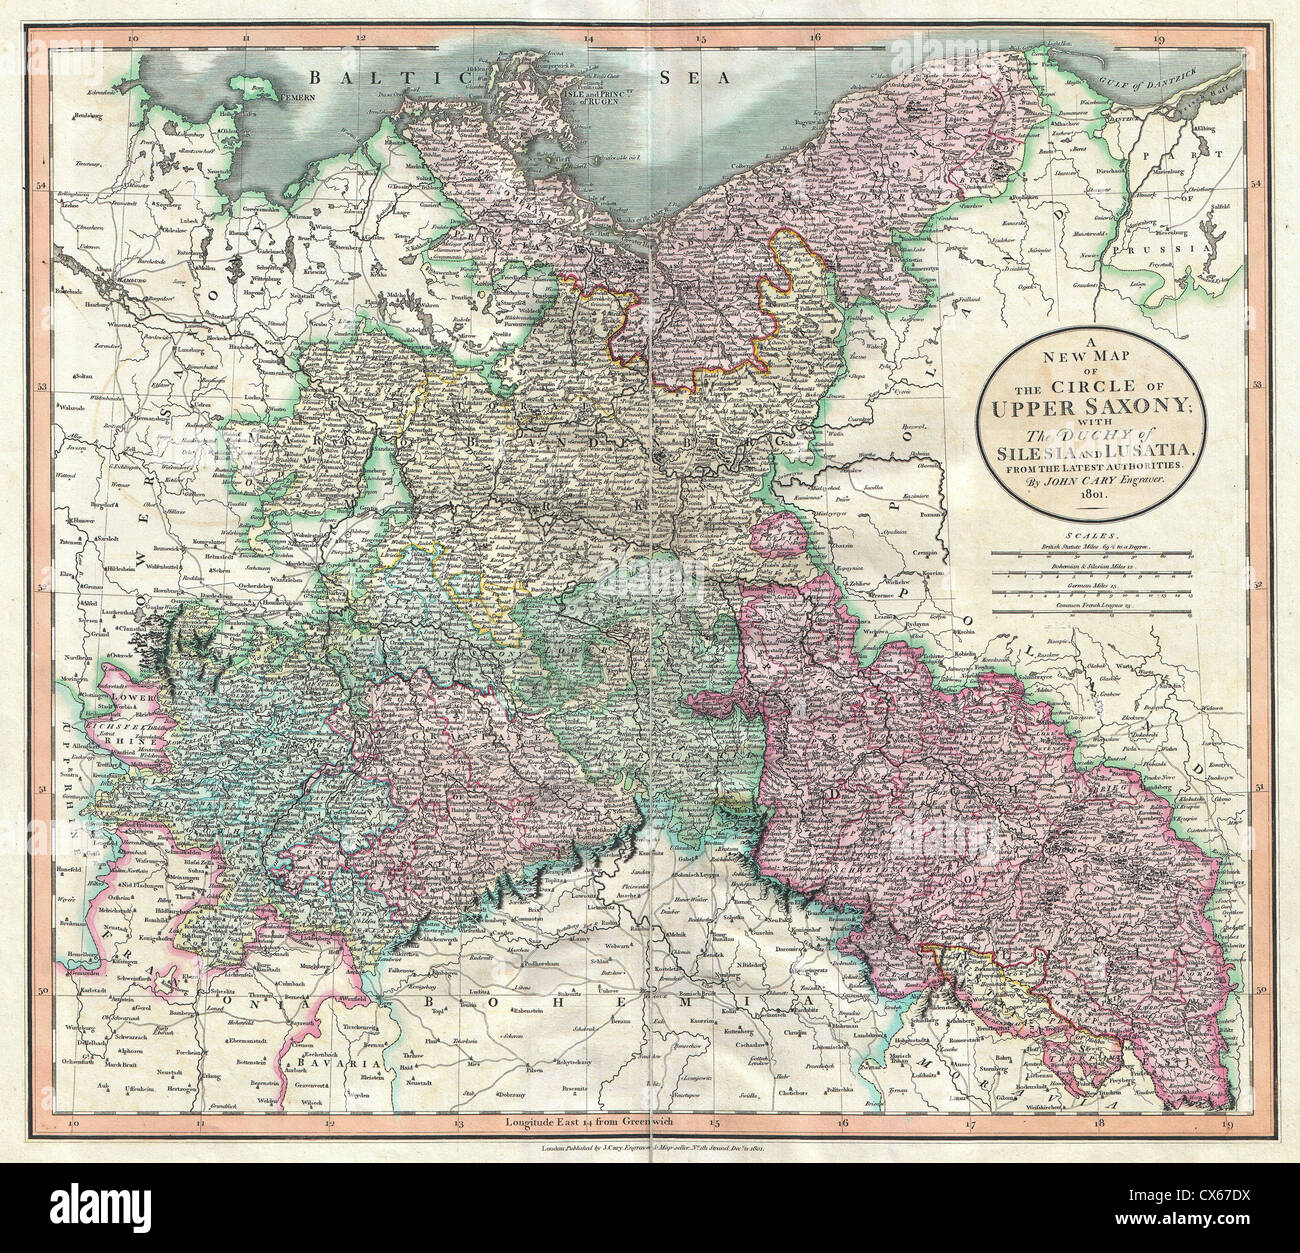 1801 Cary Map Of Upper Saxony Germany Berlin Dresden Stock Photo